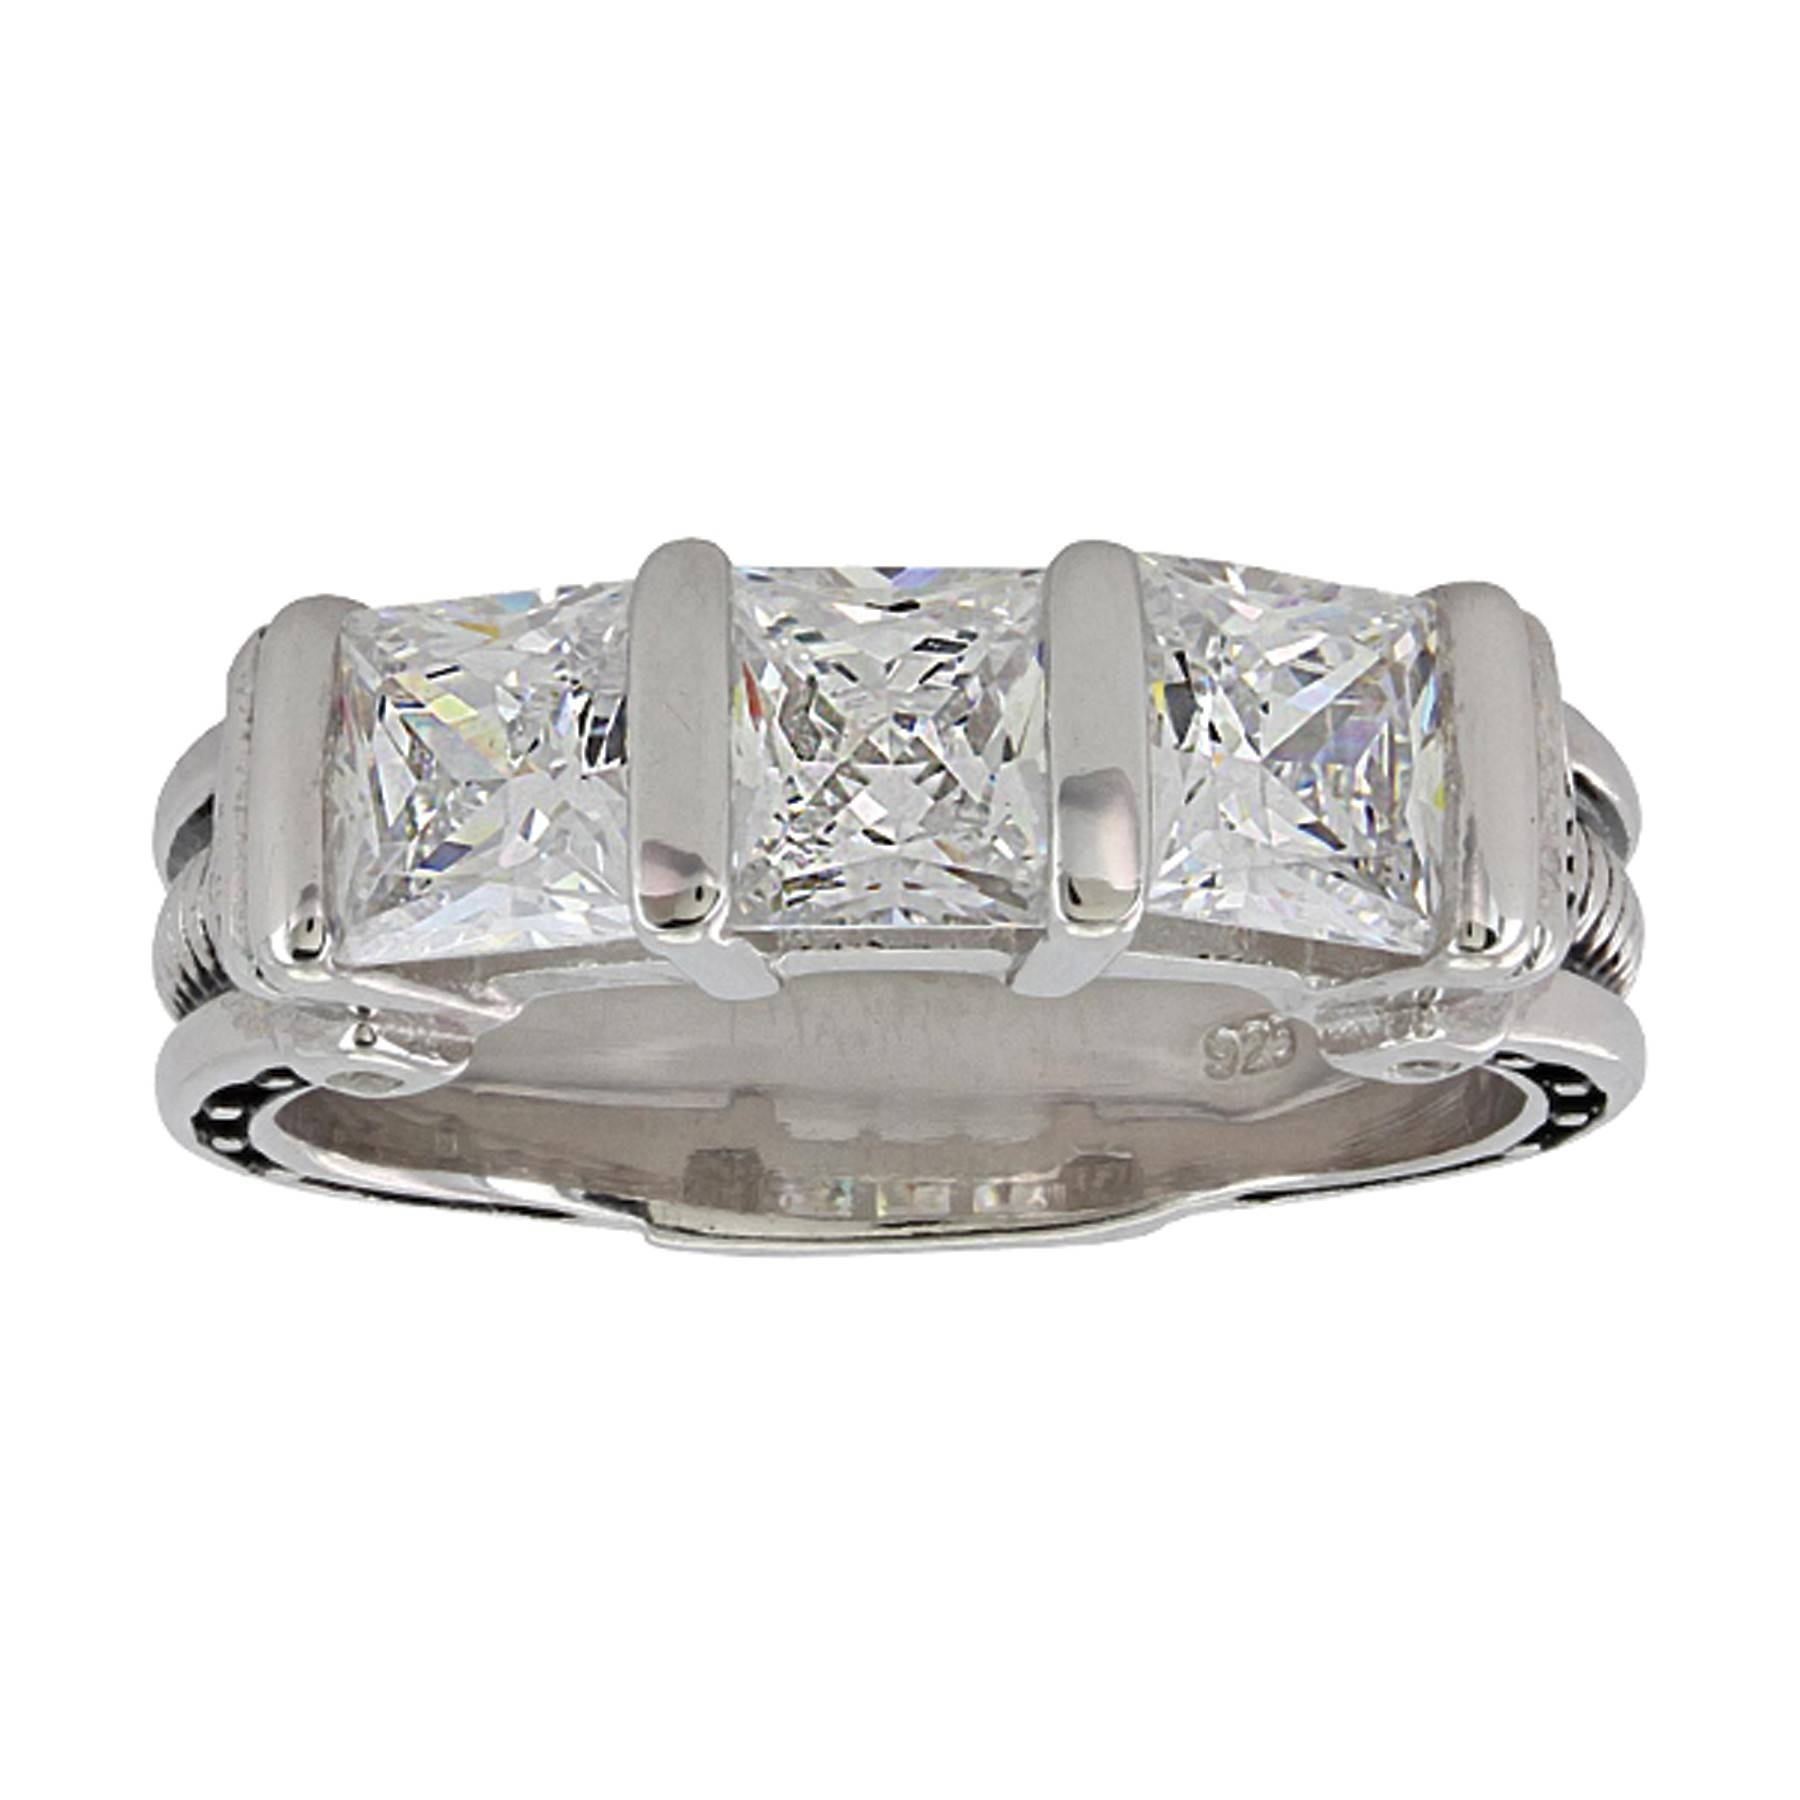 Western Rings | Montana Silversmiths Within Mens Western Wedding Bands (View 15 of 15)